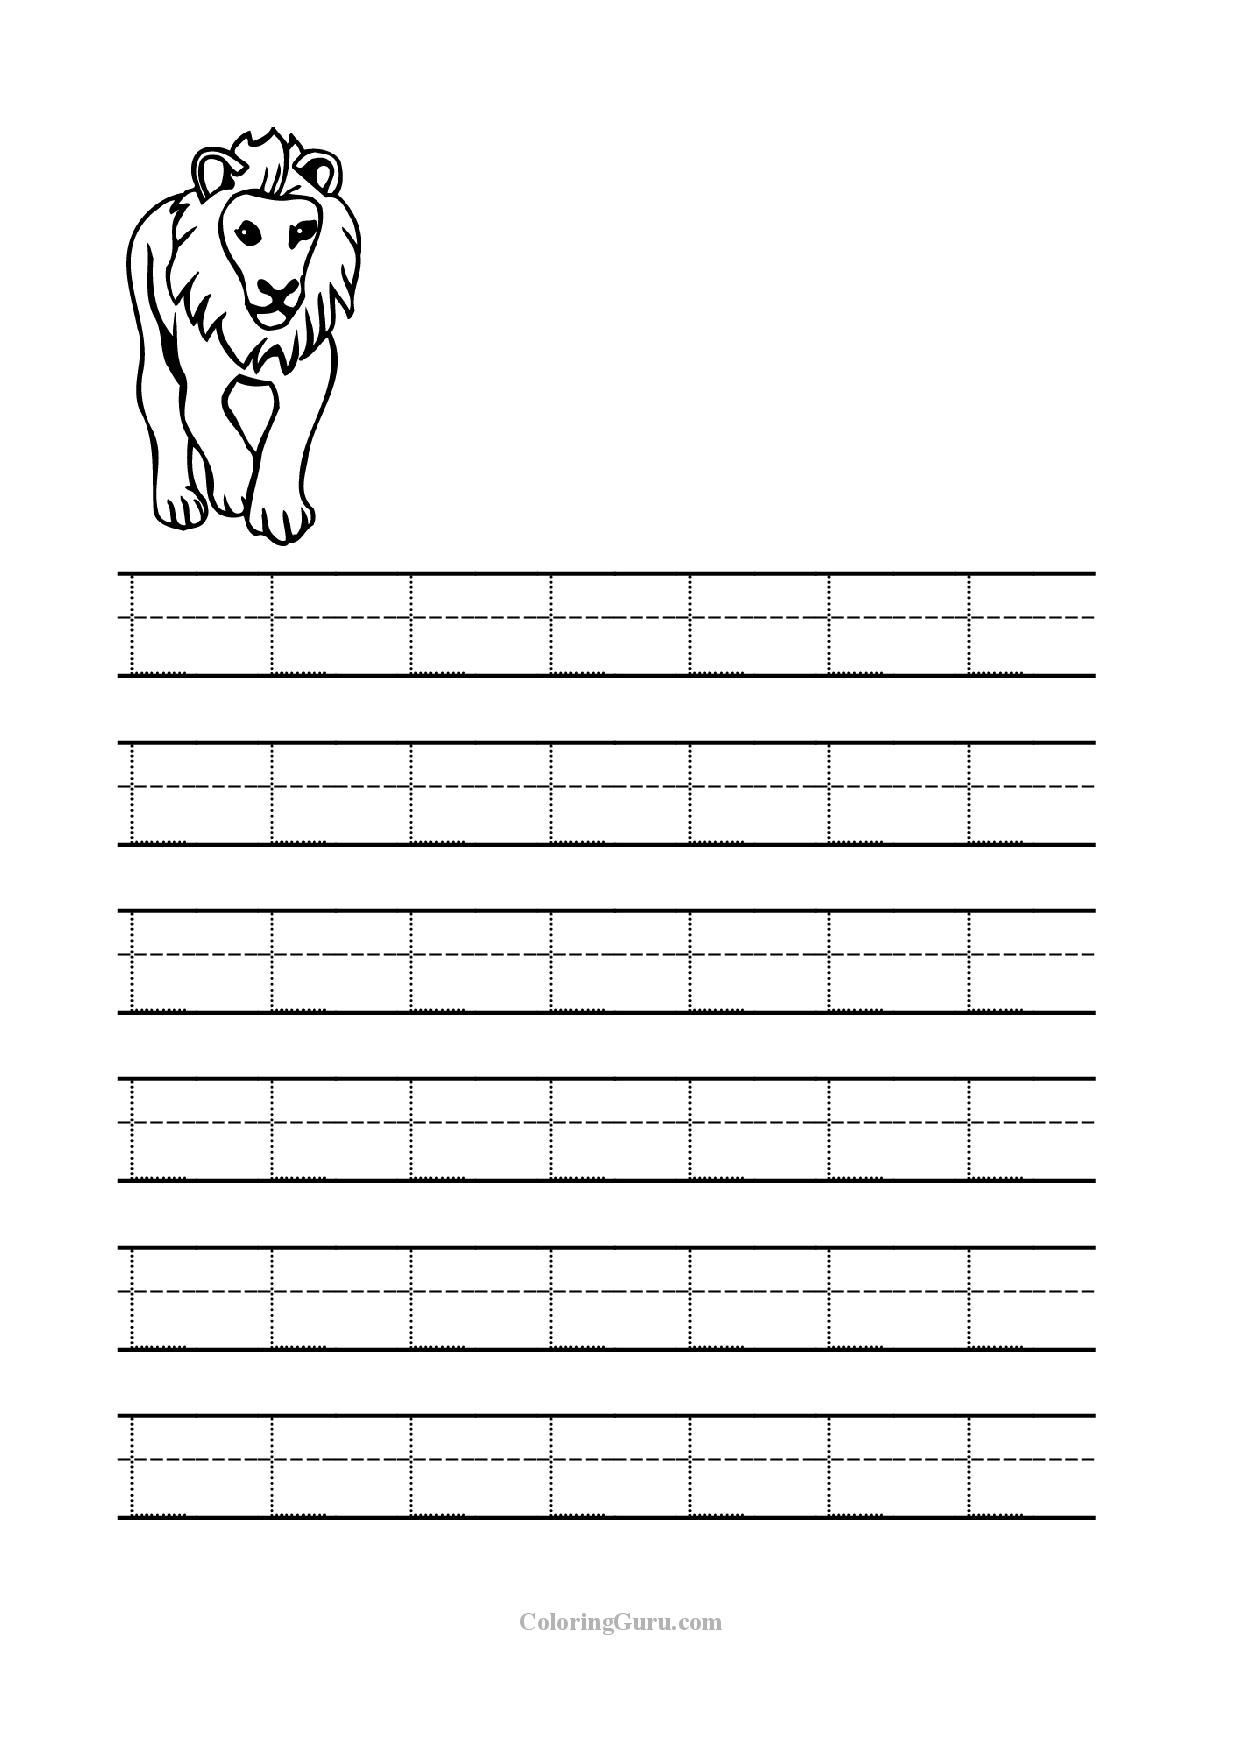 Free Printable Tracing Letter L Worksheets For Preschool pertaining to Letter L Worksheets Printable